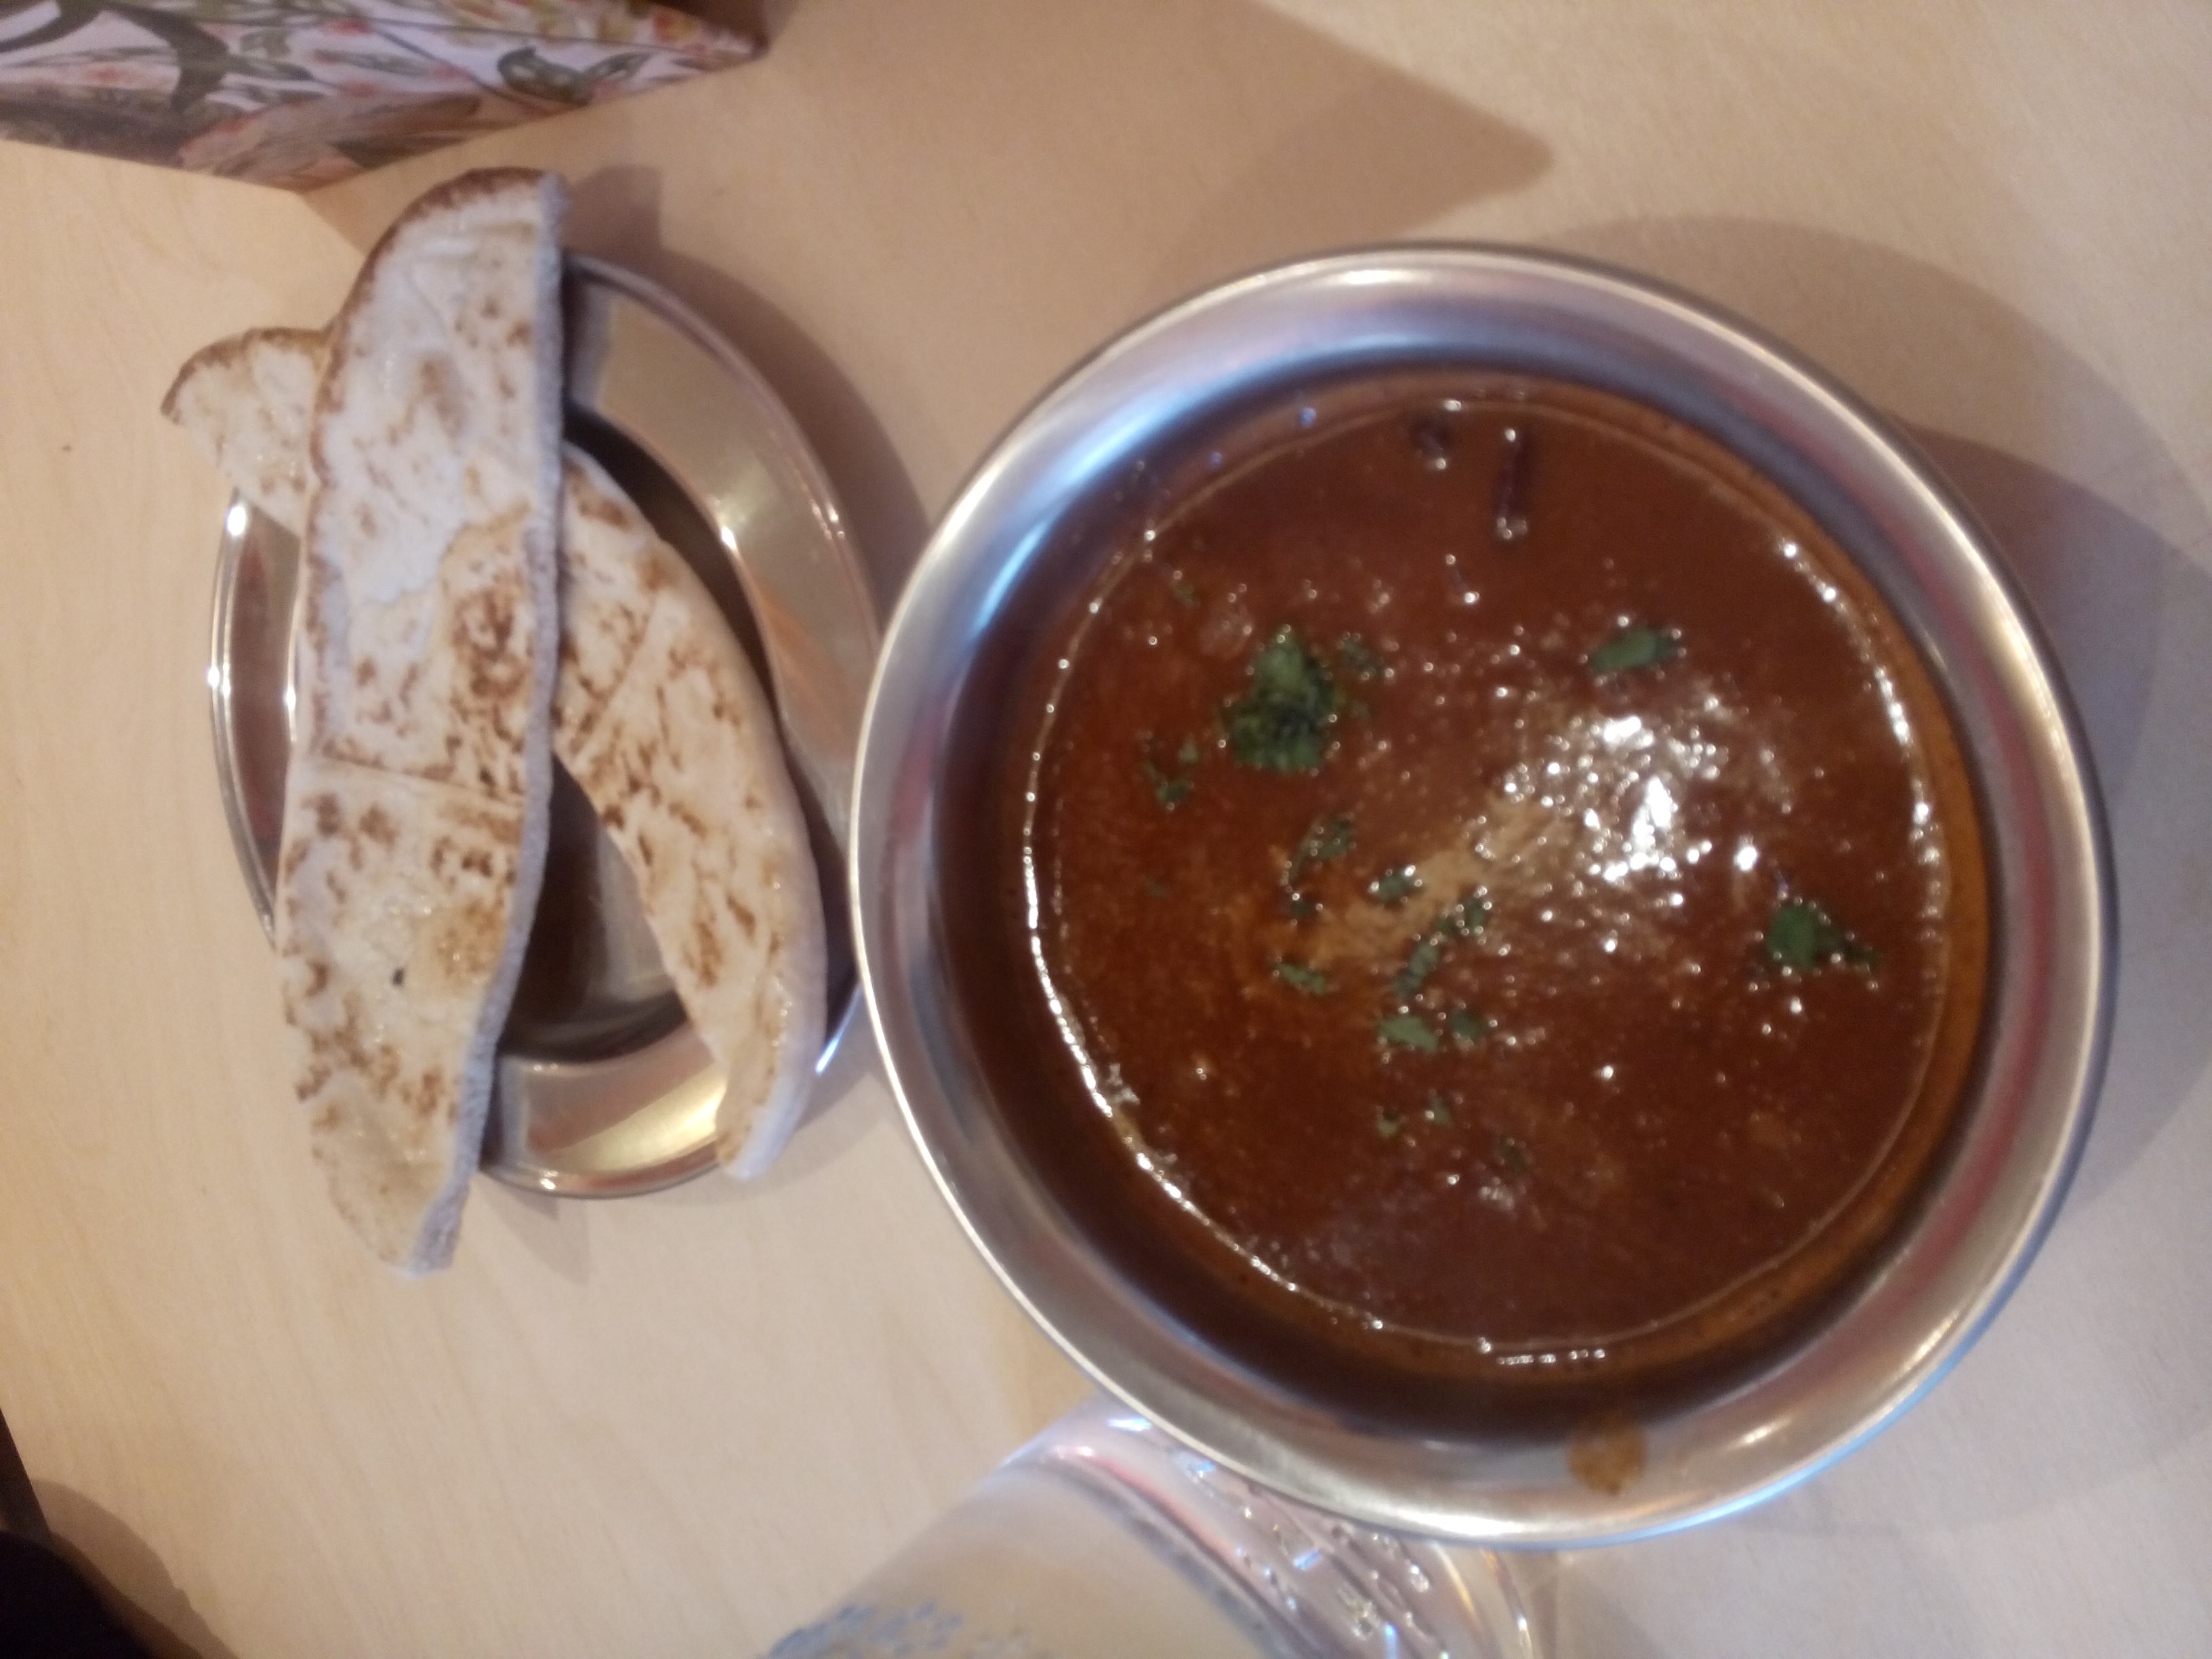 A bowl of red soup with flatbread on a plate